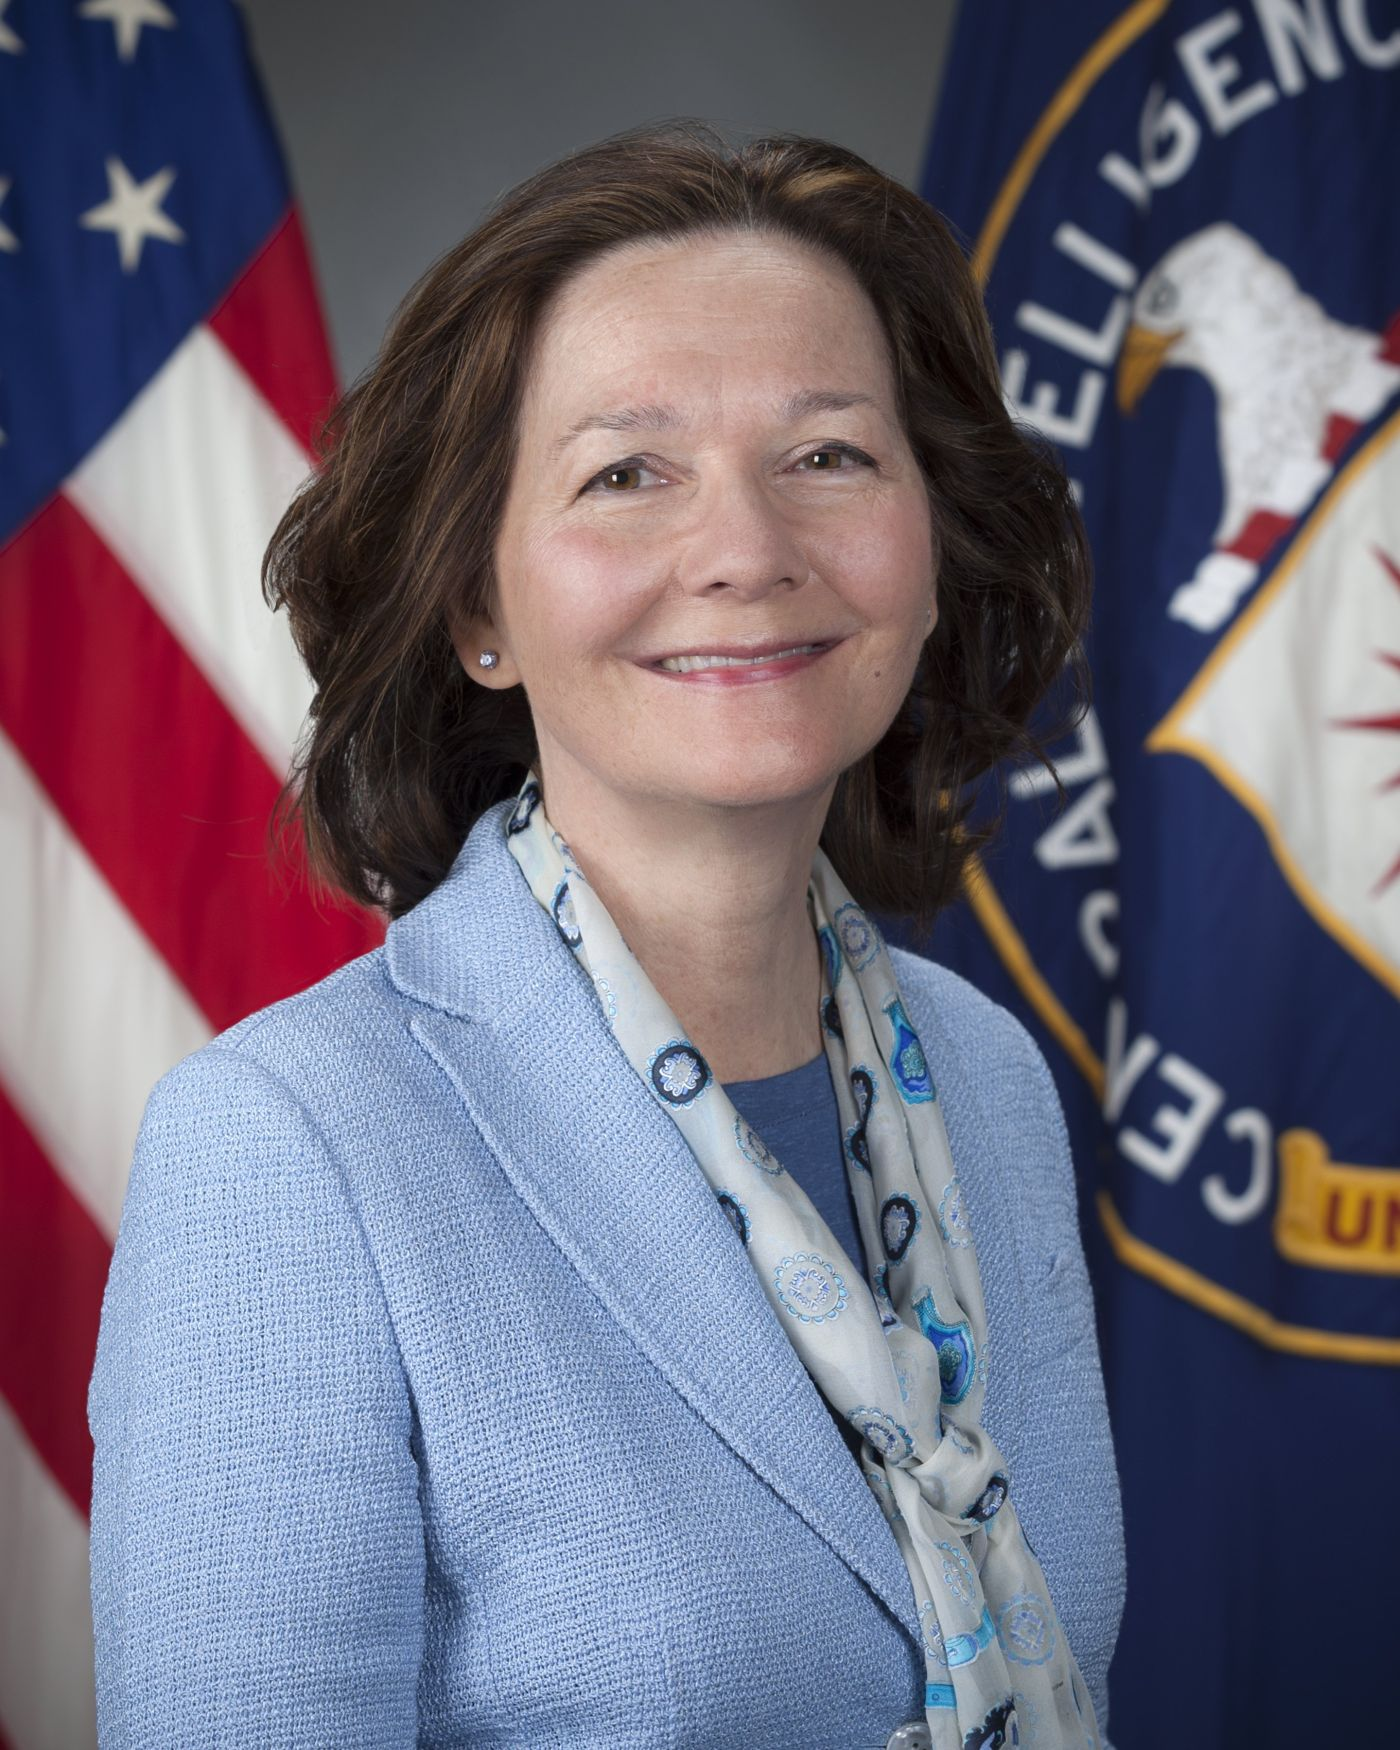 epa06601051 A handout photo made available by the Central Intelligence Agency shows Gina Haspel, Langley, Virginia, USA, 21 March 2017 (issued 13 March 2018). Gina Haspel has been named by US President Donald J. Trump as CIA director, replacing Mike Pompeo who will replace Rex Tillerson as Secretary of State. Both are subject to Senate confirmation. EPA/HANDOUT HANDOUT EDITORIAL USE ONLY/NO SALES